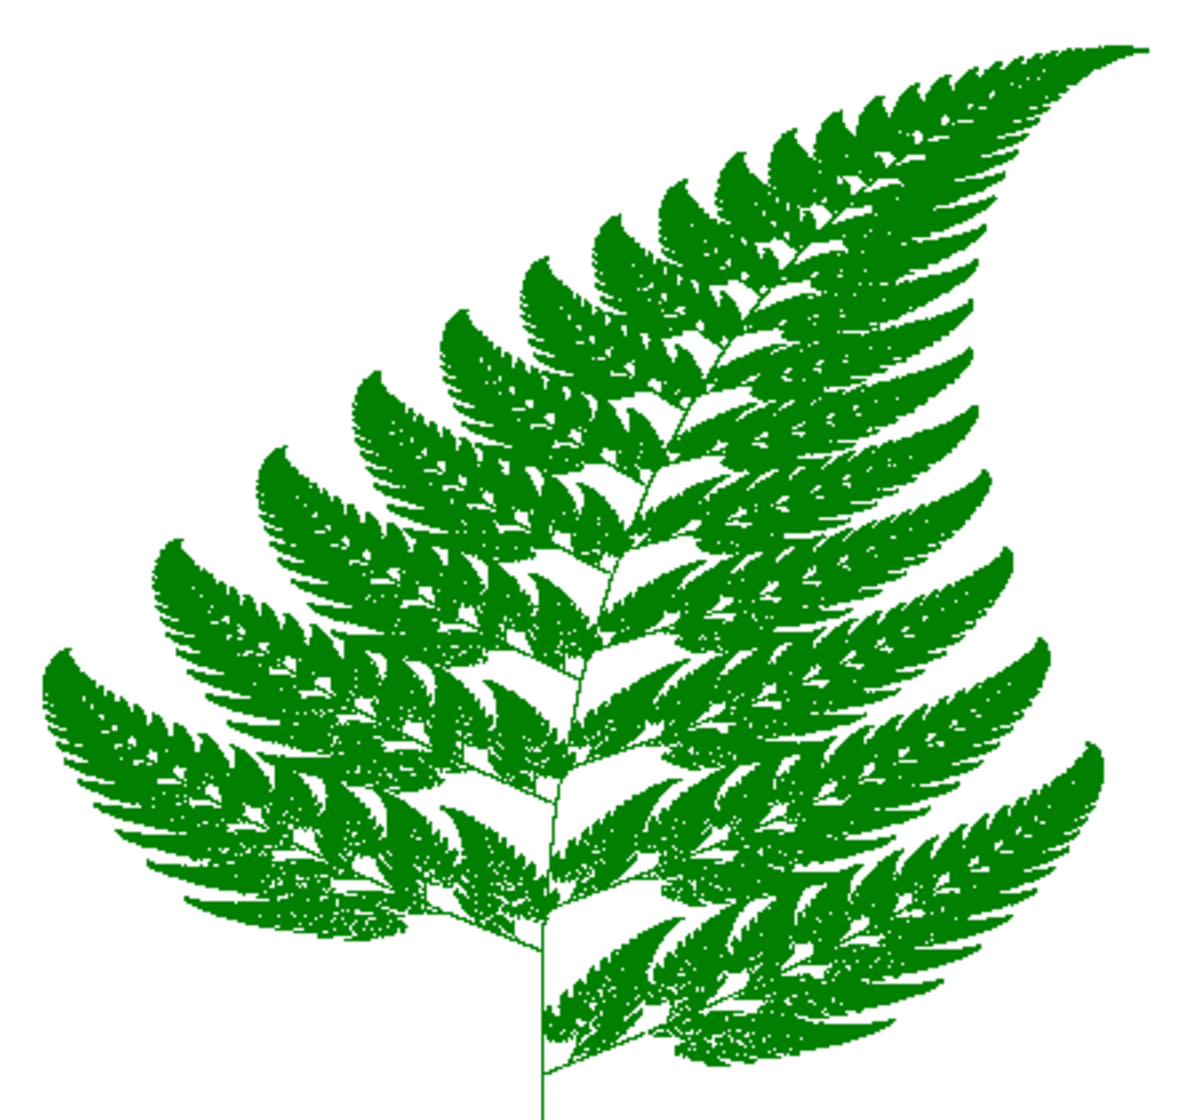 The Barnsley Fern is a fully mathematical object created by matrix iterations.